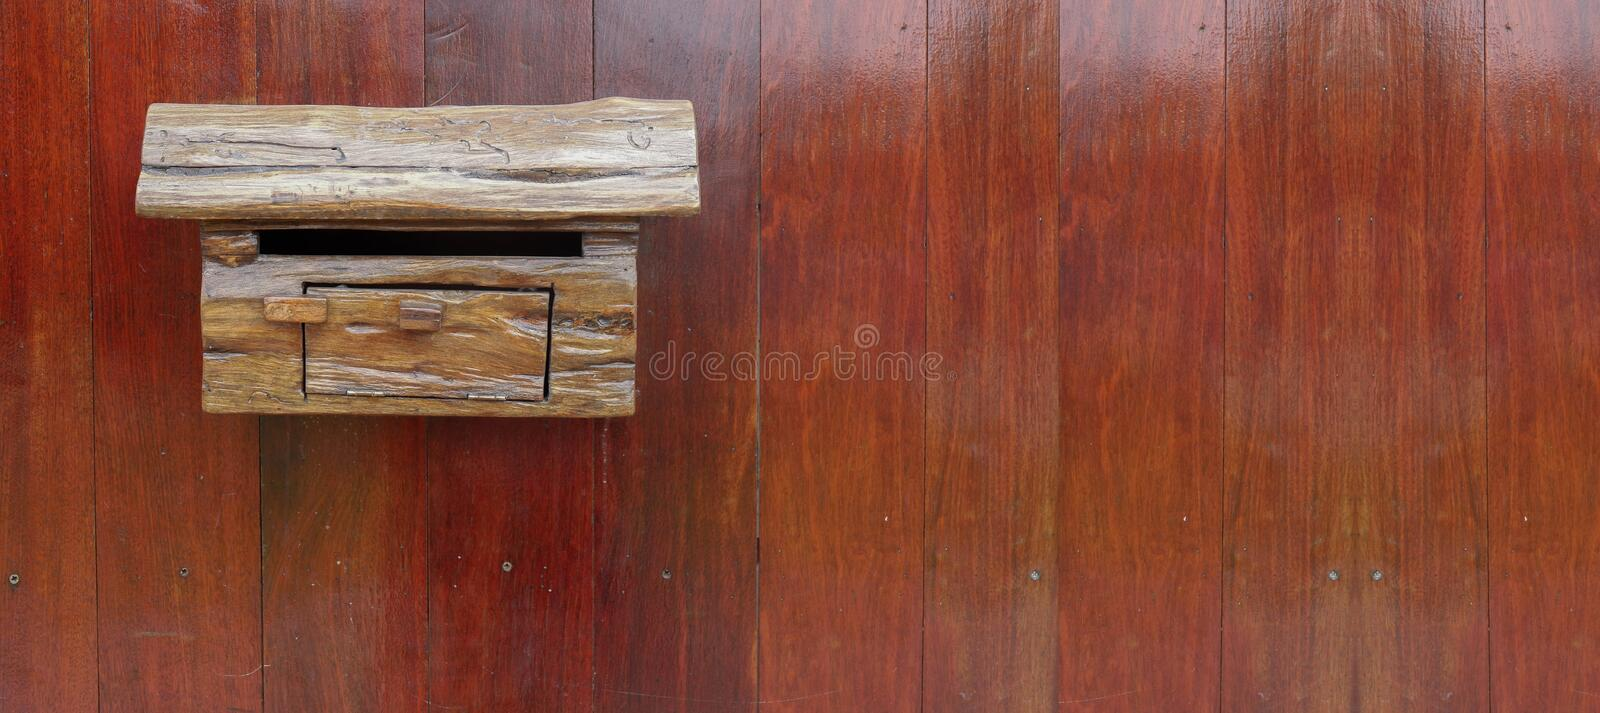 Front view wooden mailbox on wooden wall background,copy space stock images